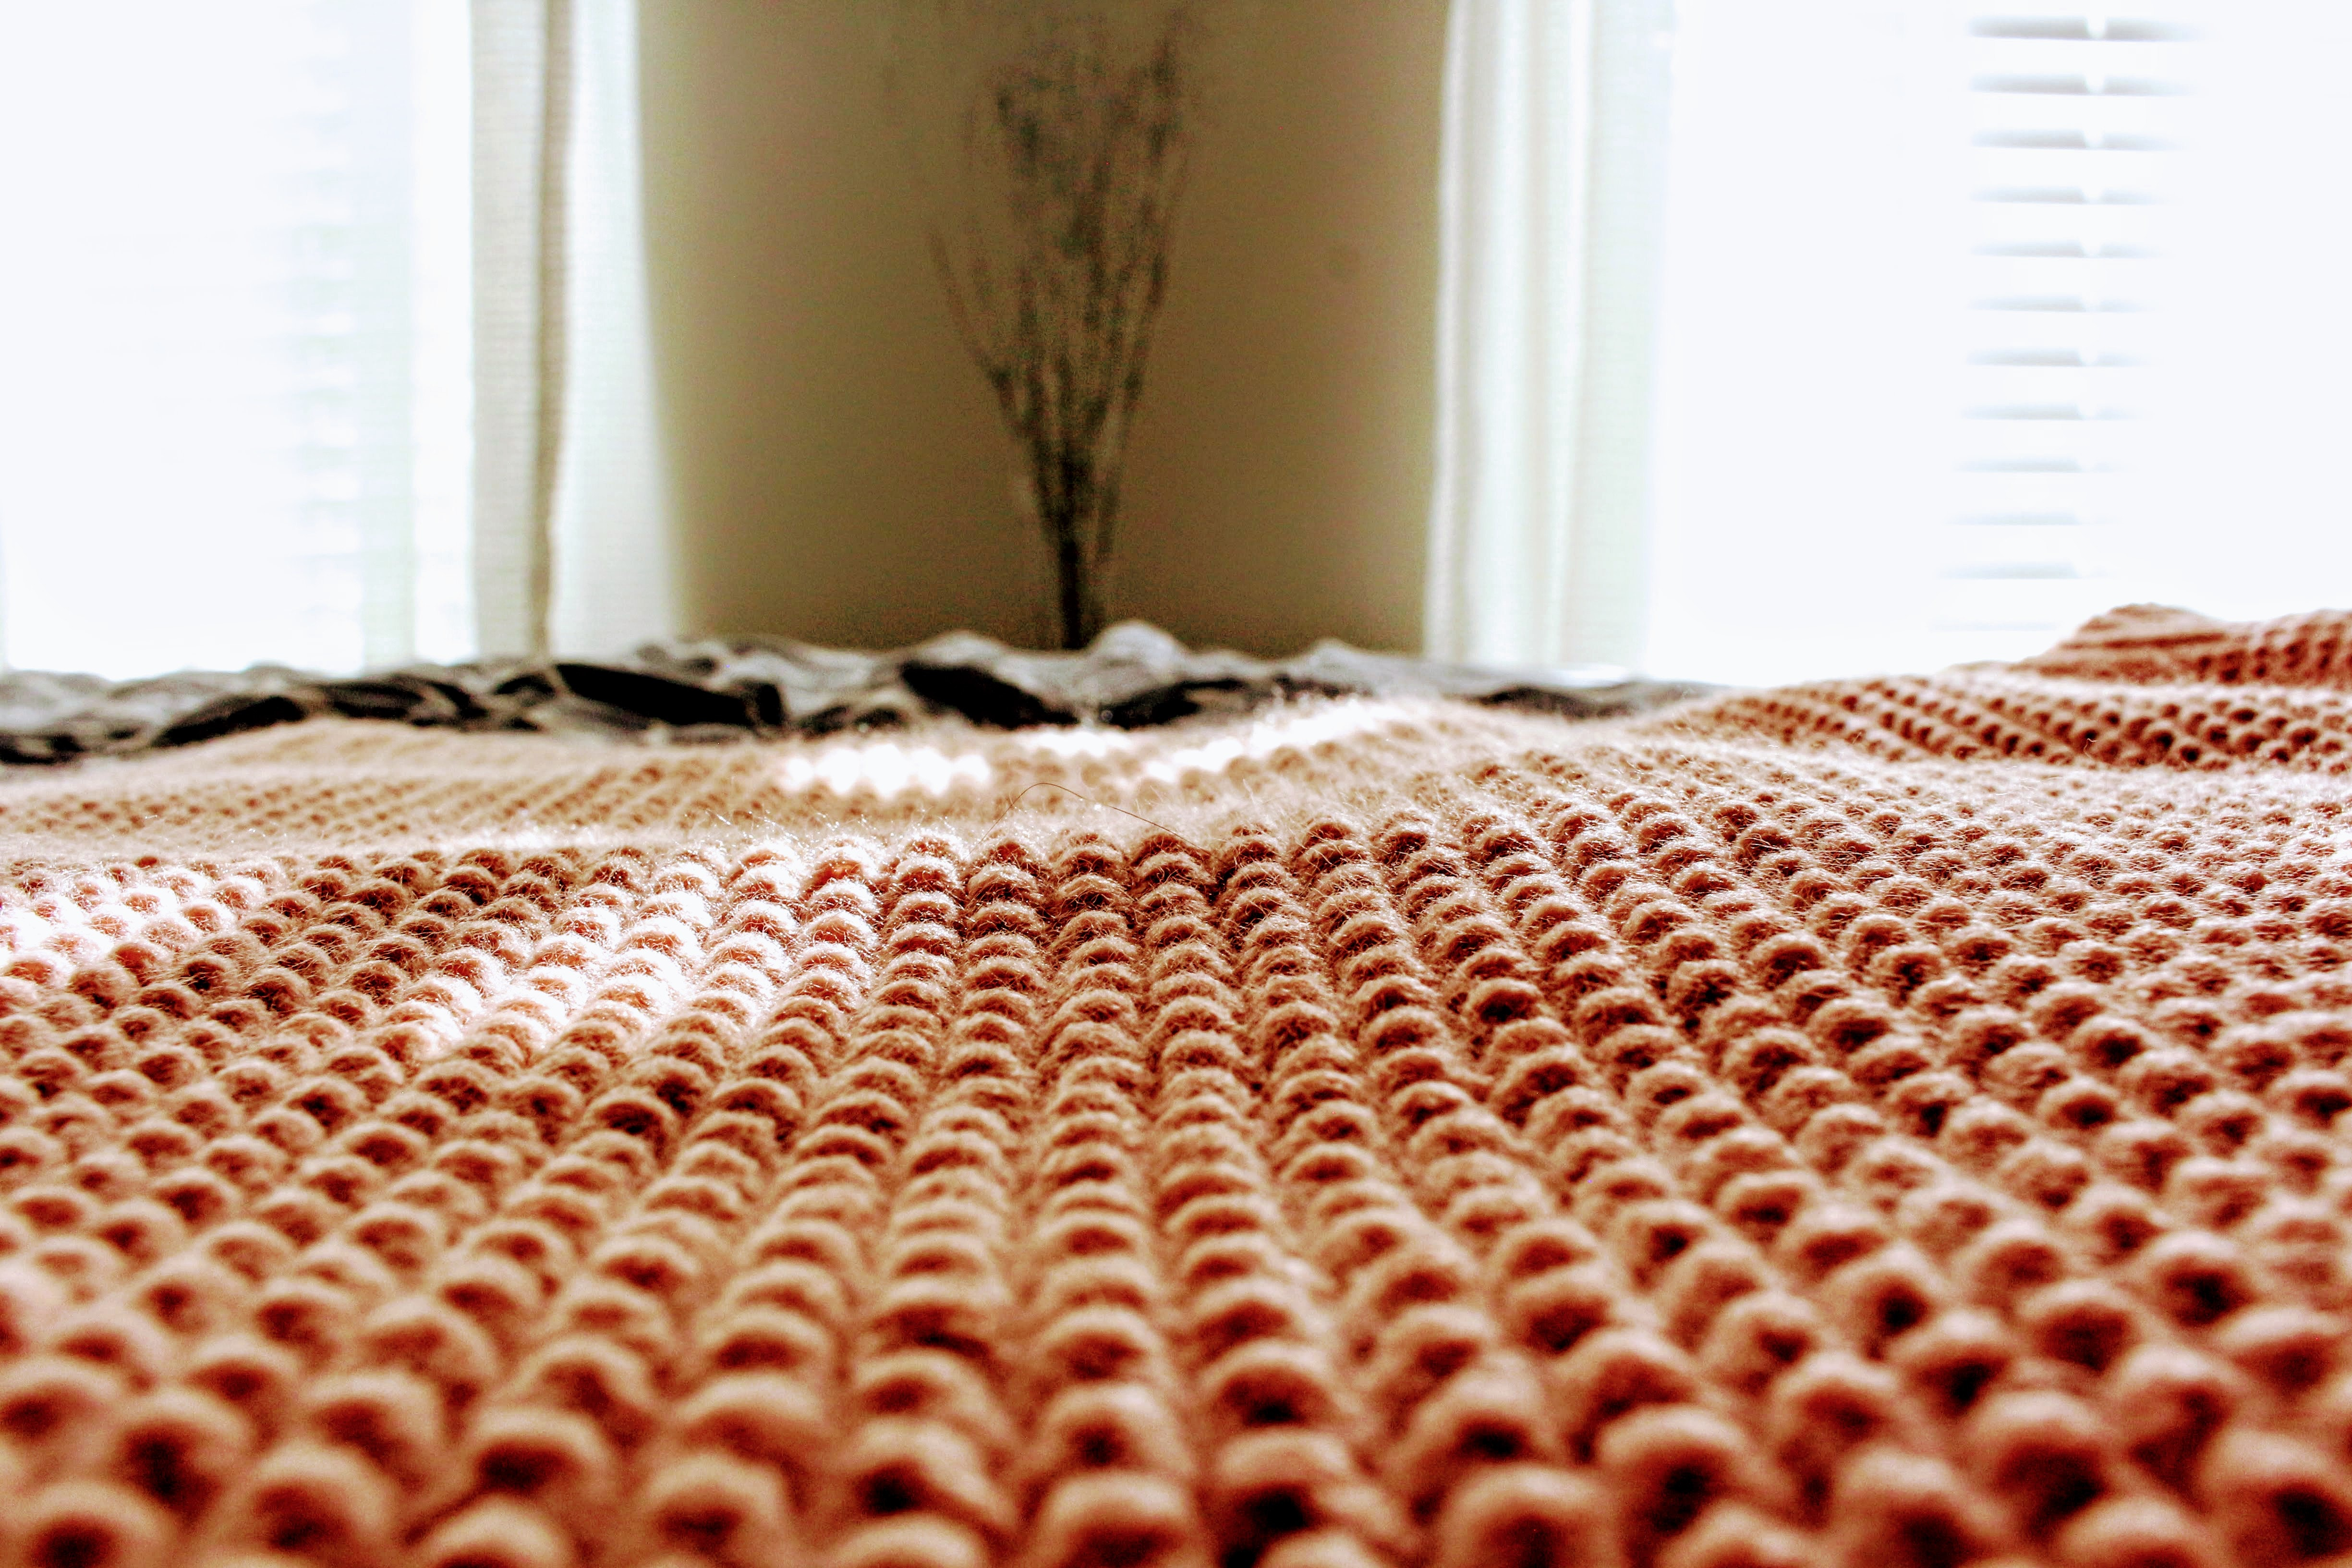 Red Carpet Selective Focus Photography, Bed, Indoors, Room, Plant, HQ Photo